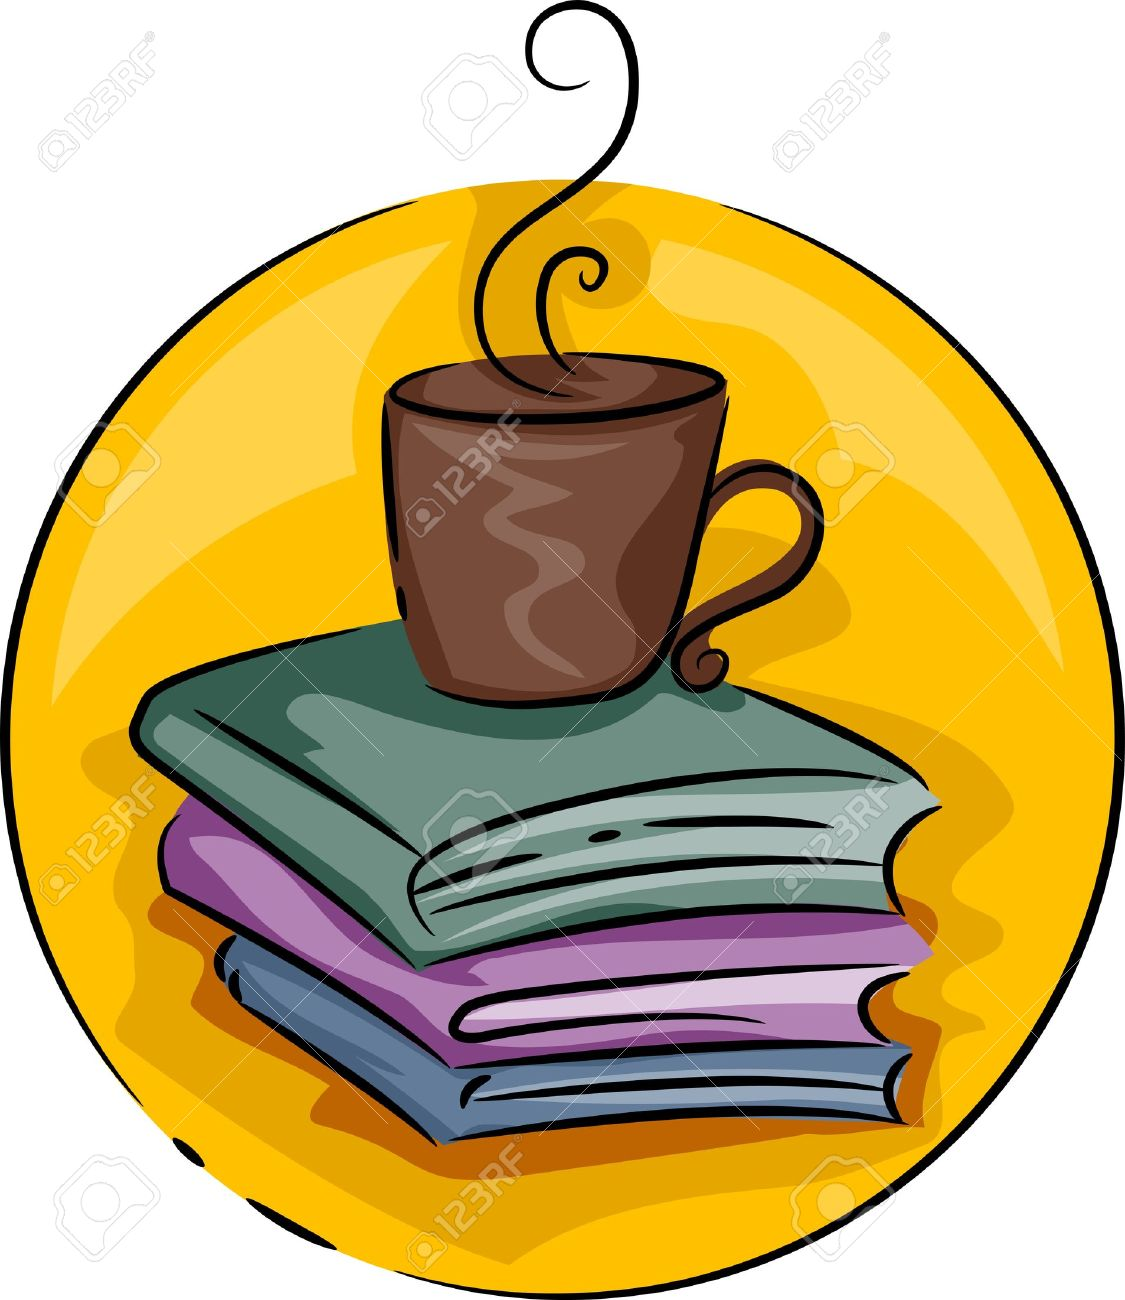 icon illustration of coffee table books stock photo picture and